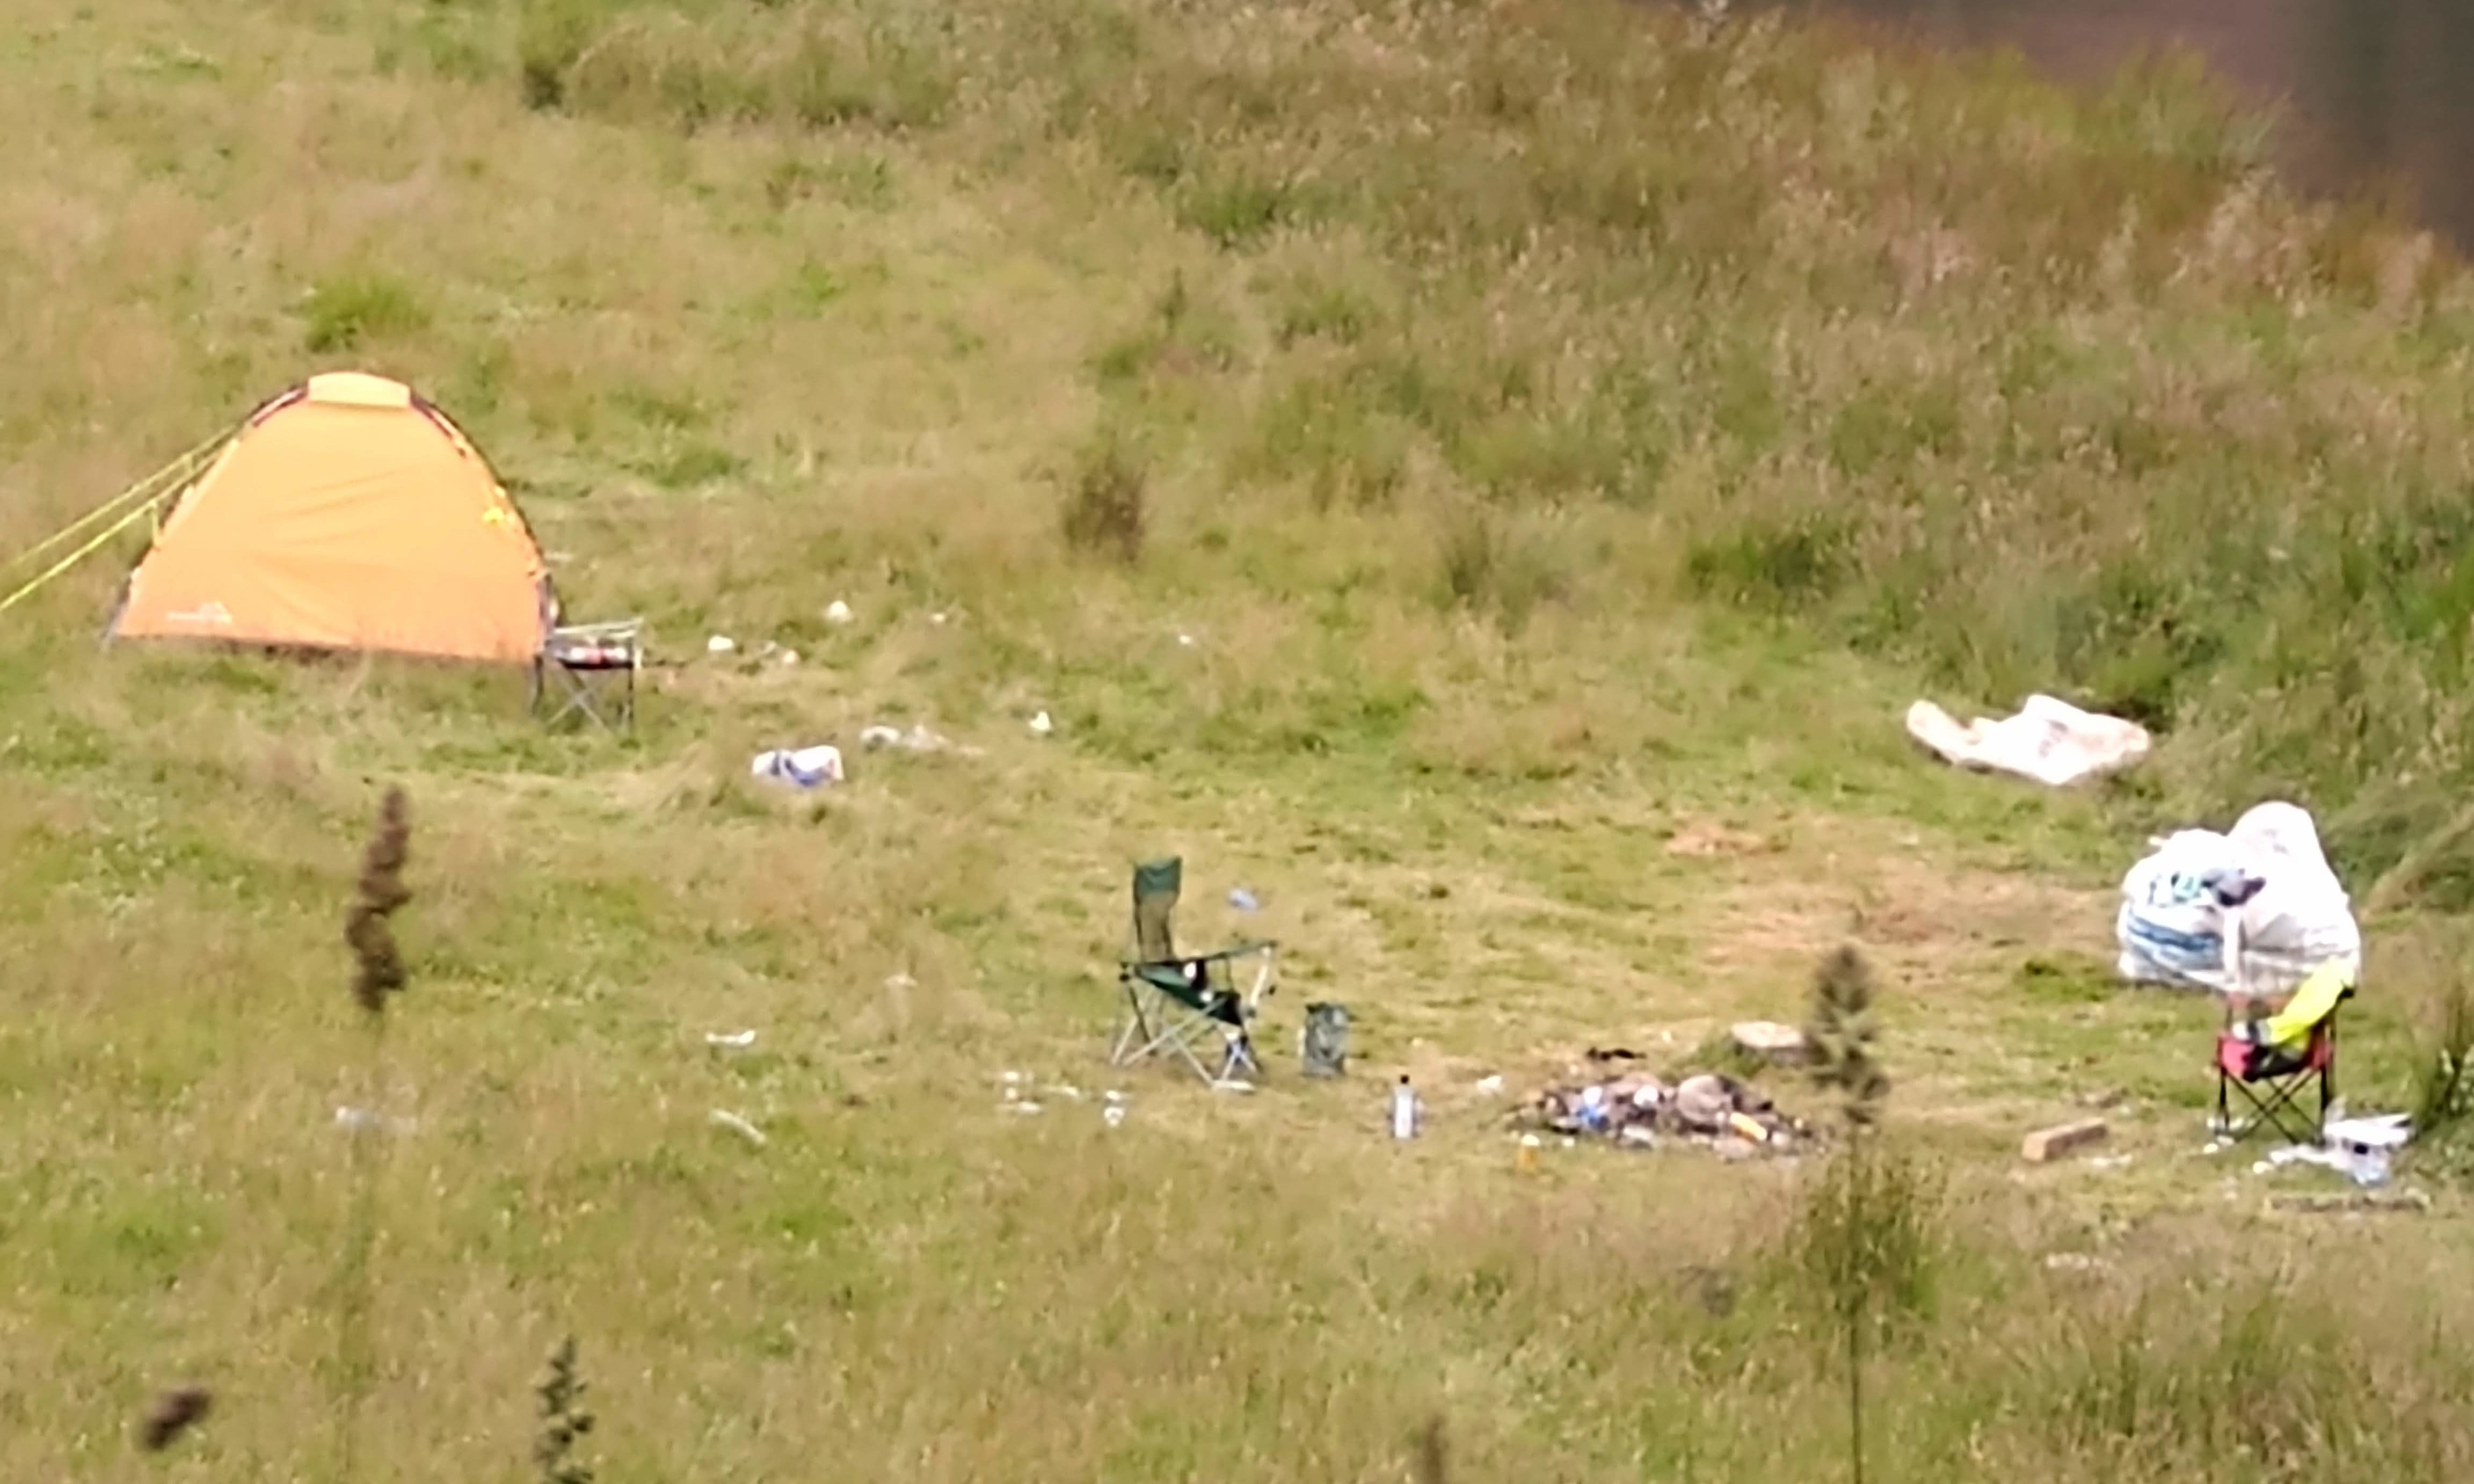 Abandoned campsite at Loch Tummel in Highland Perthshire